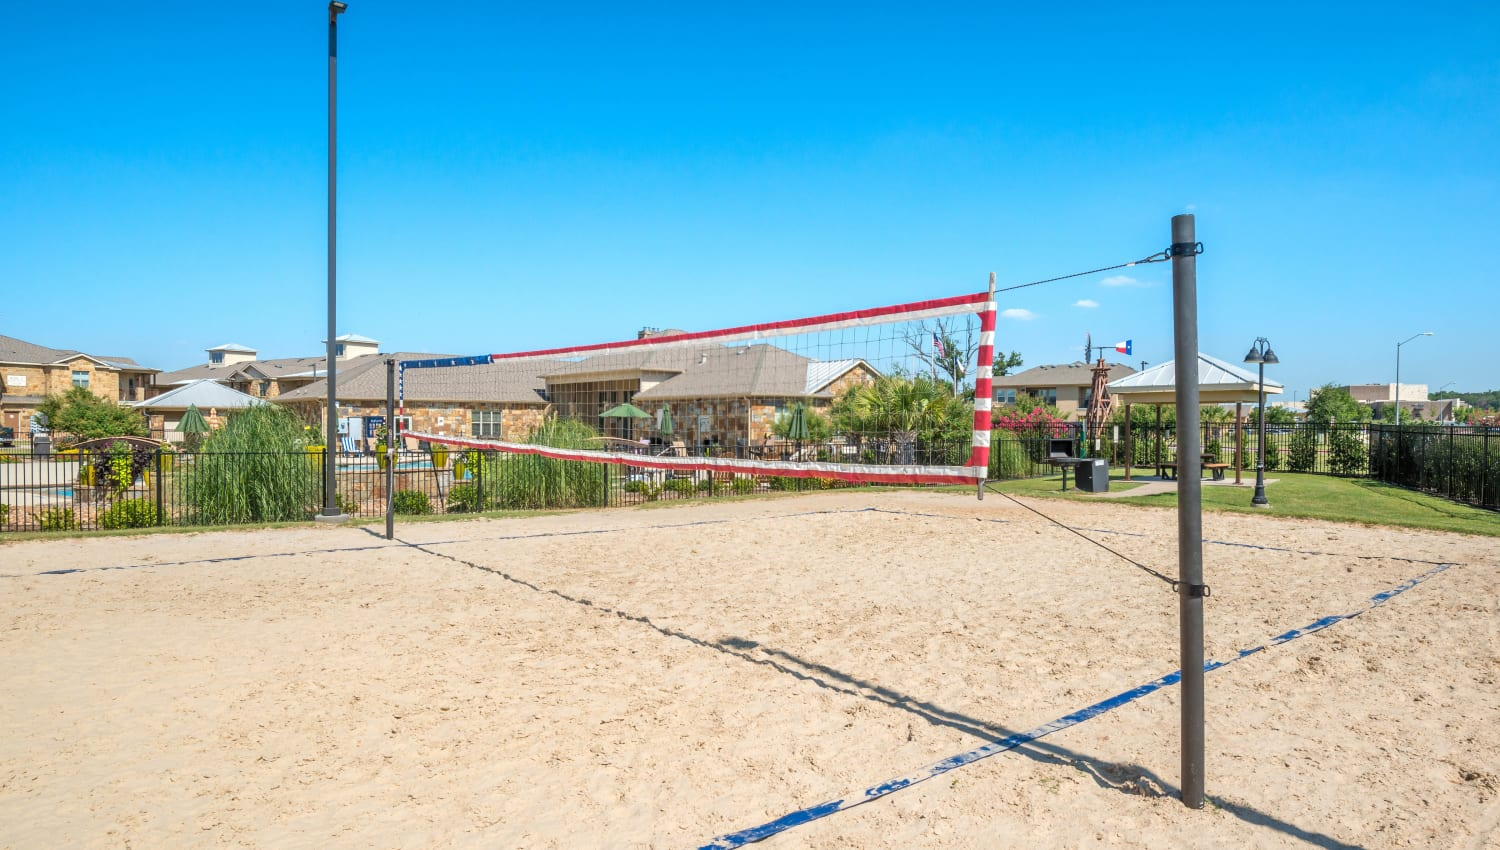 Sand volleyball courts at Olympus Willow Park in Willow Park, Texas